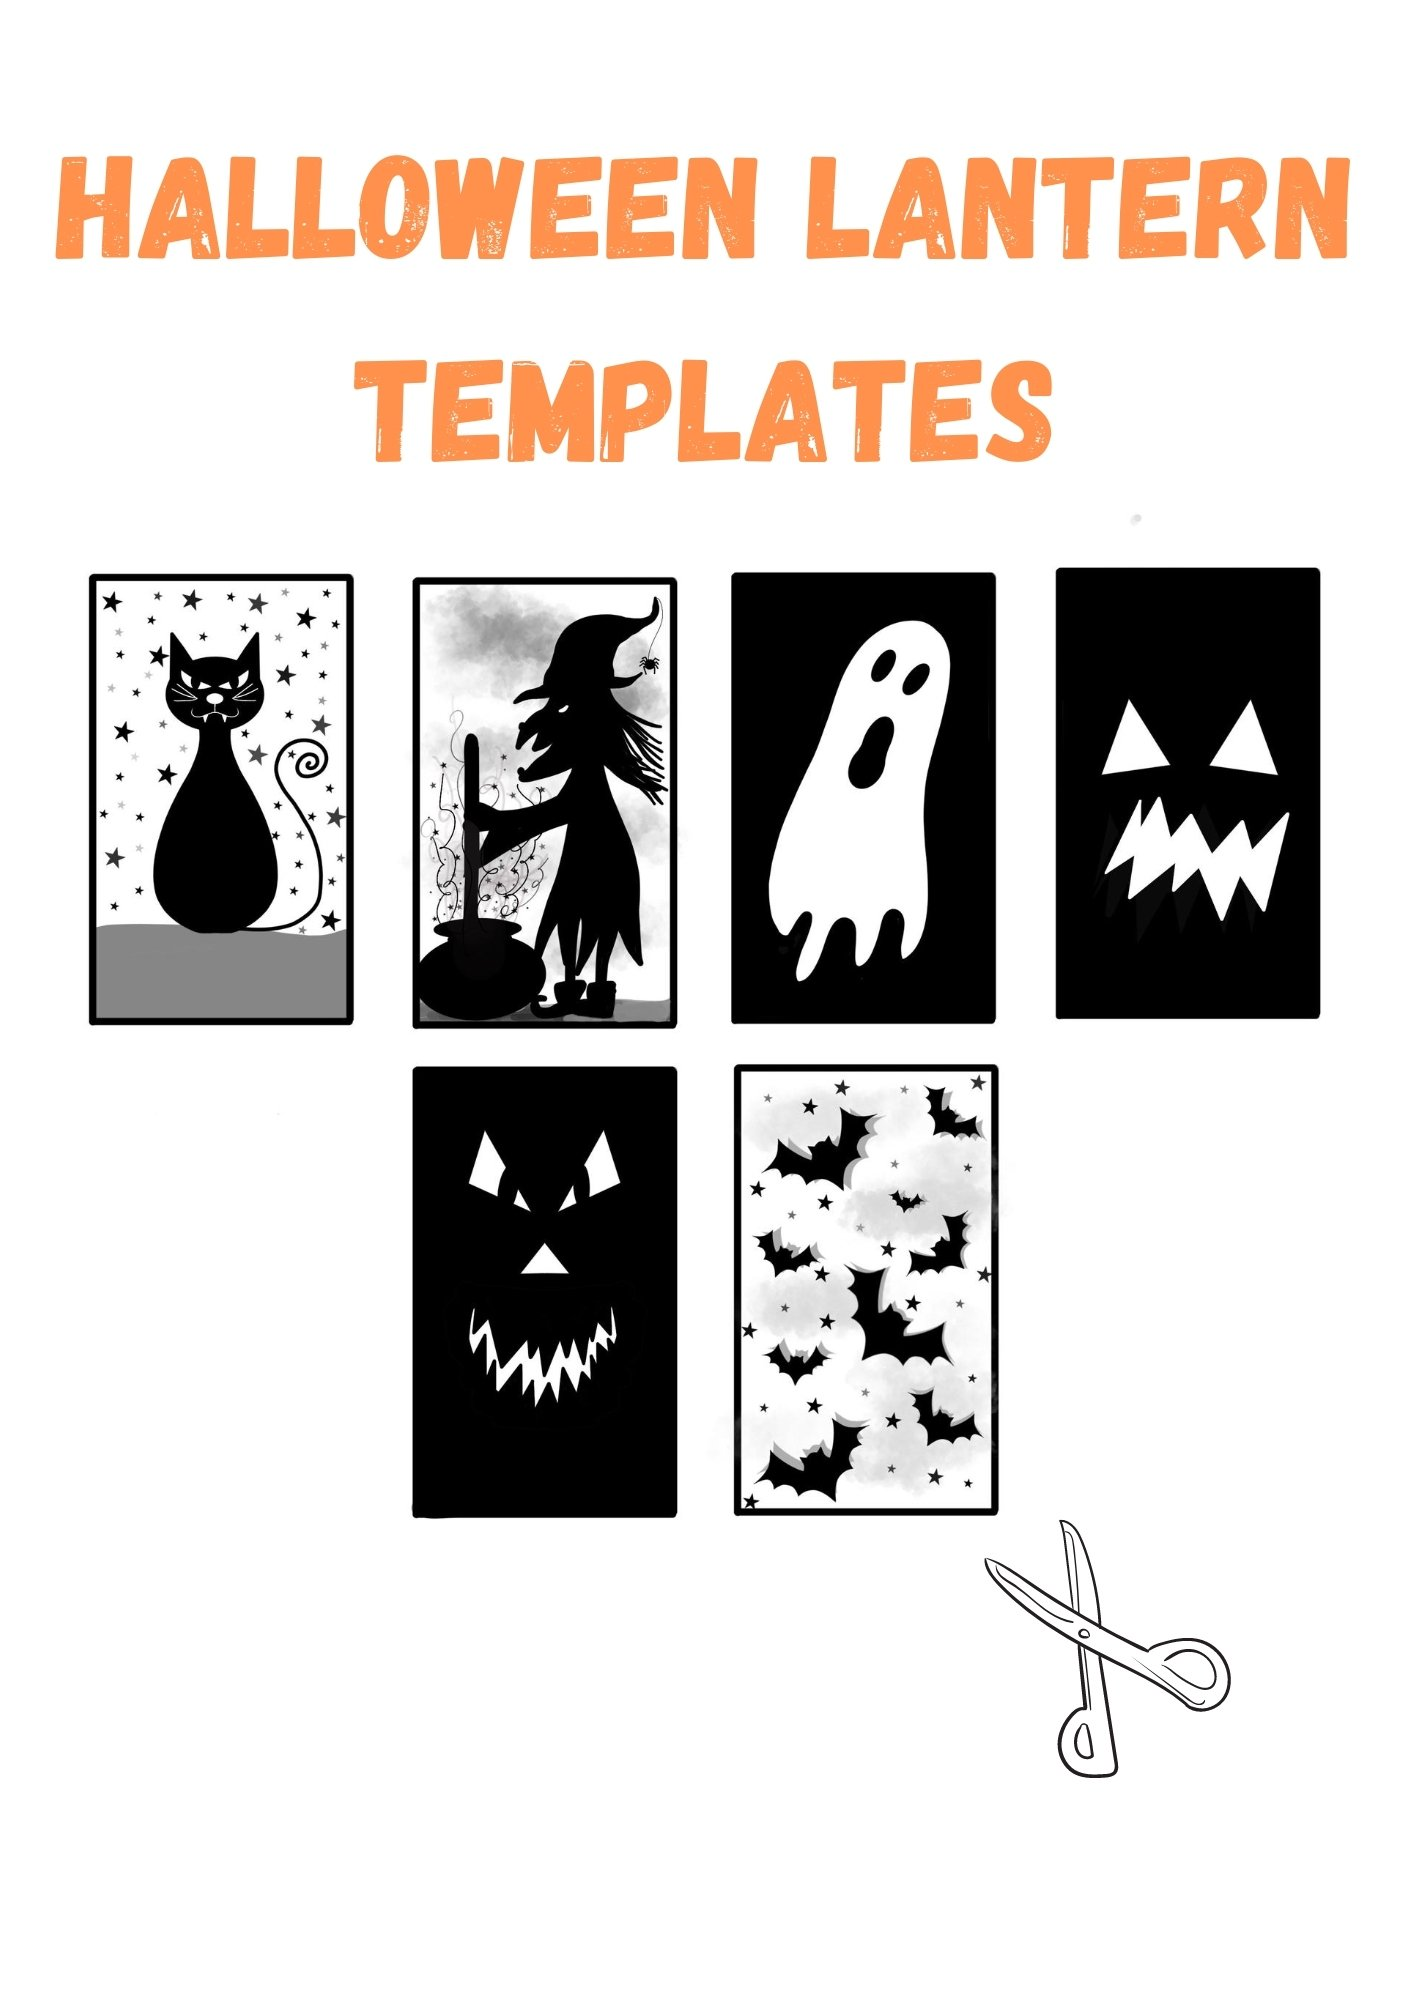 Download your templates